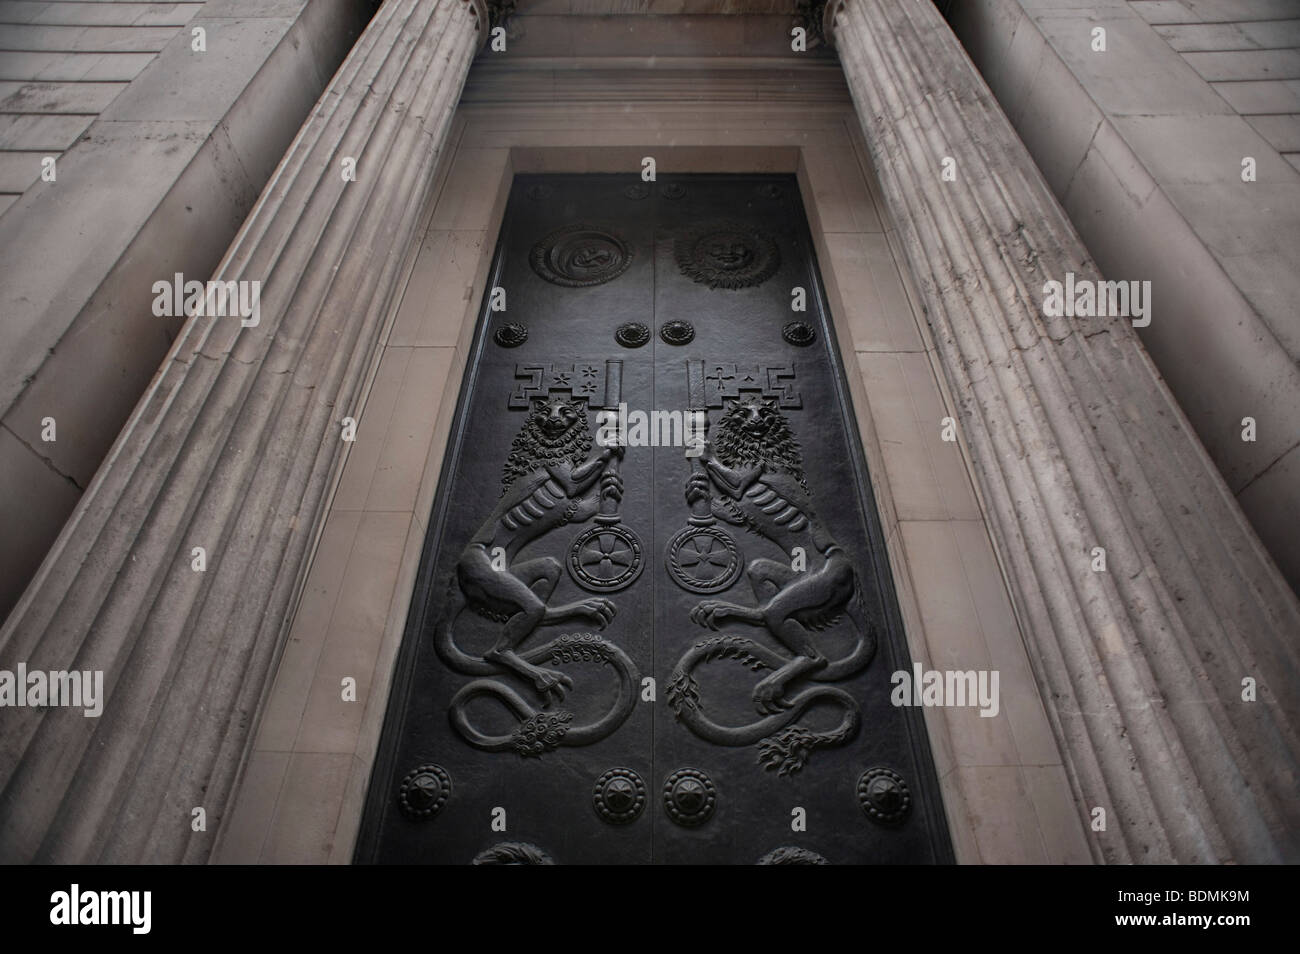 The Bank of England, London - Stock Image